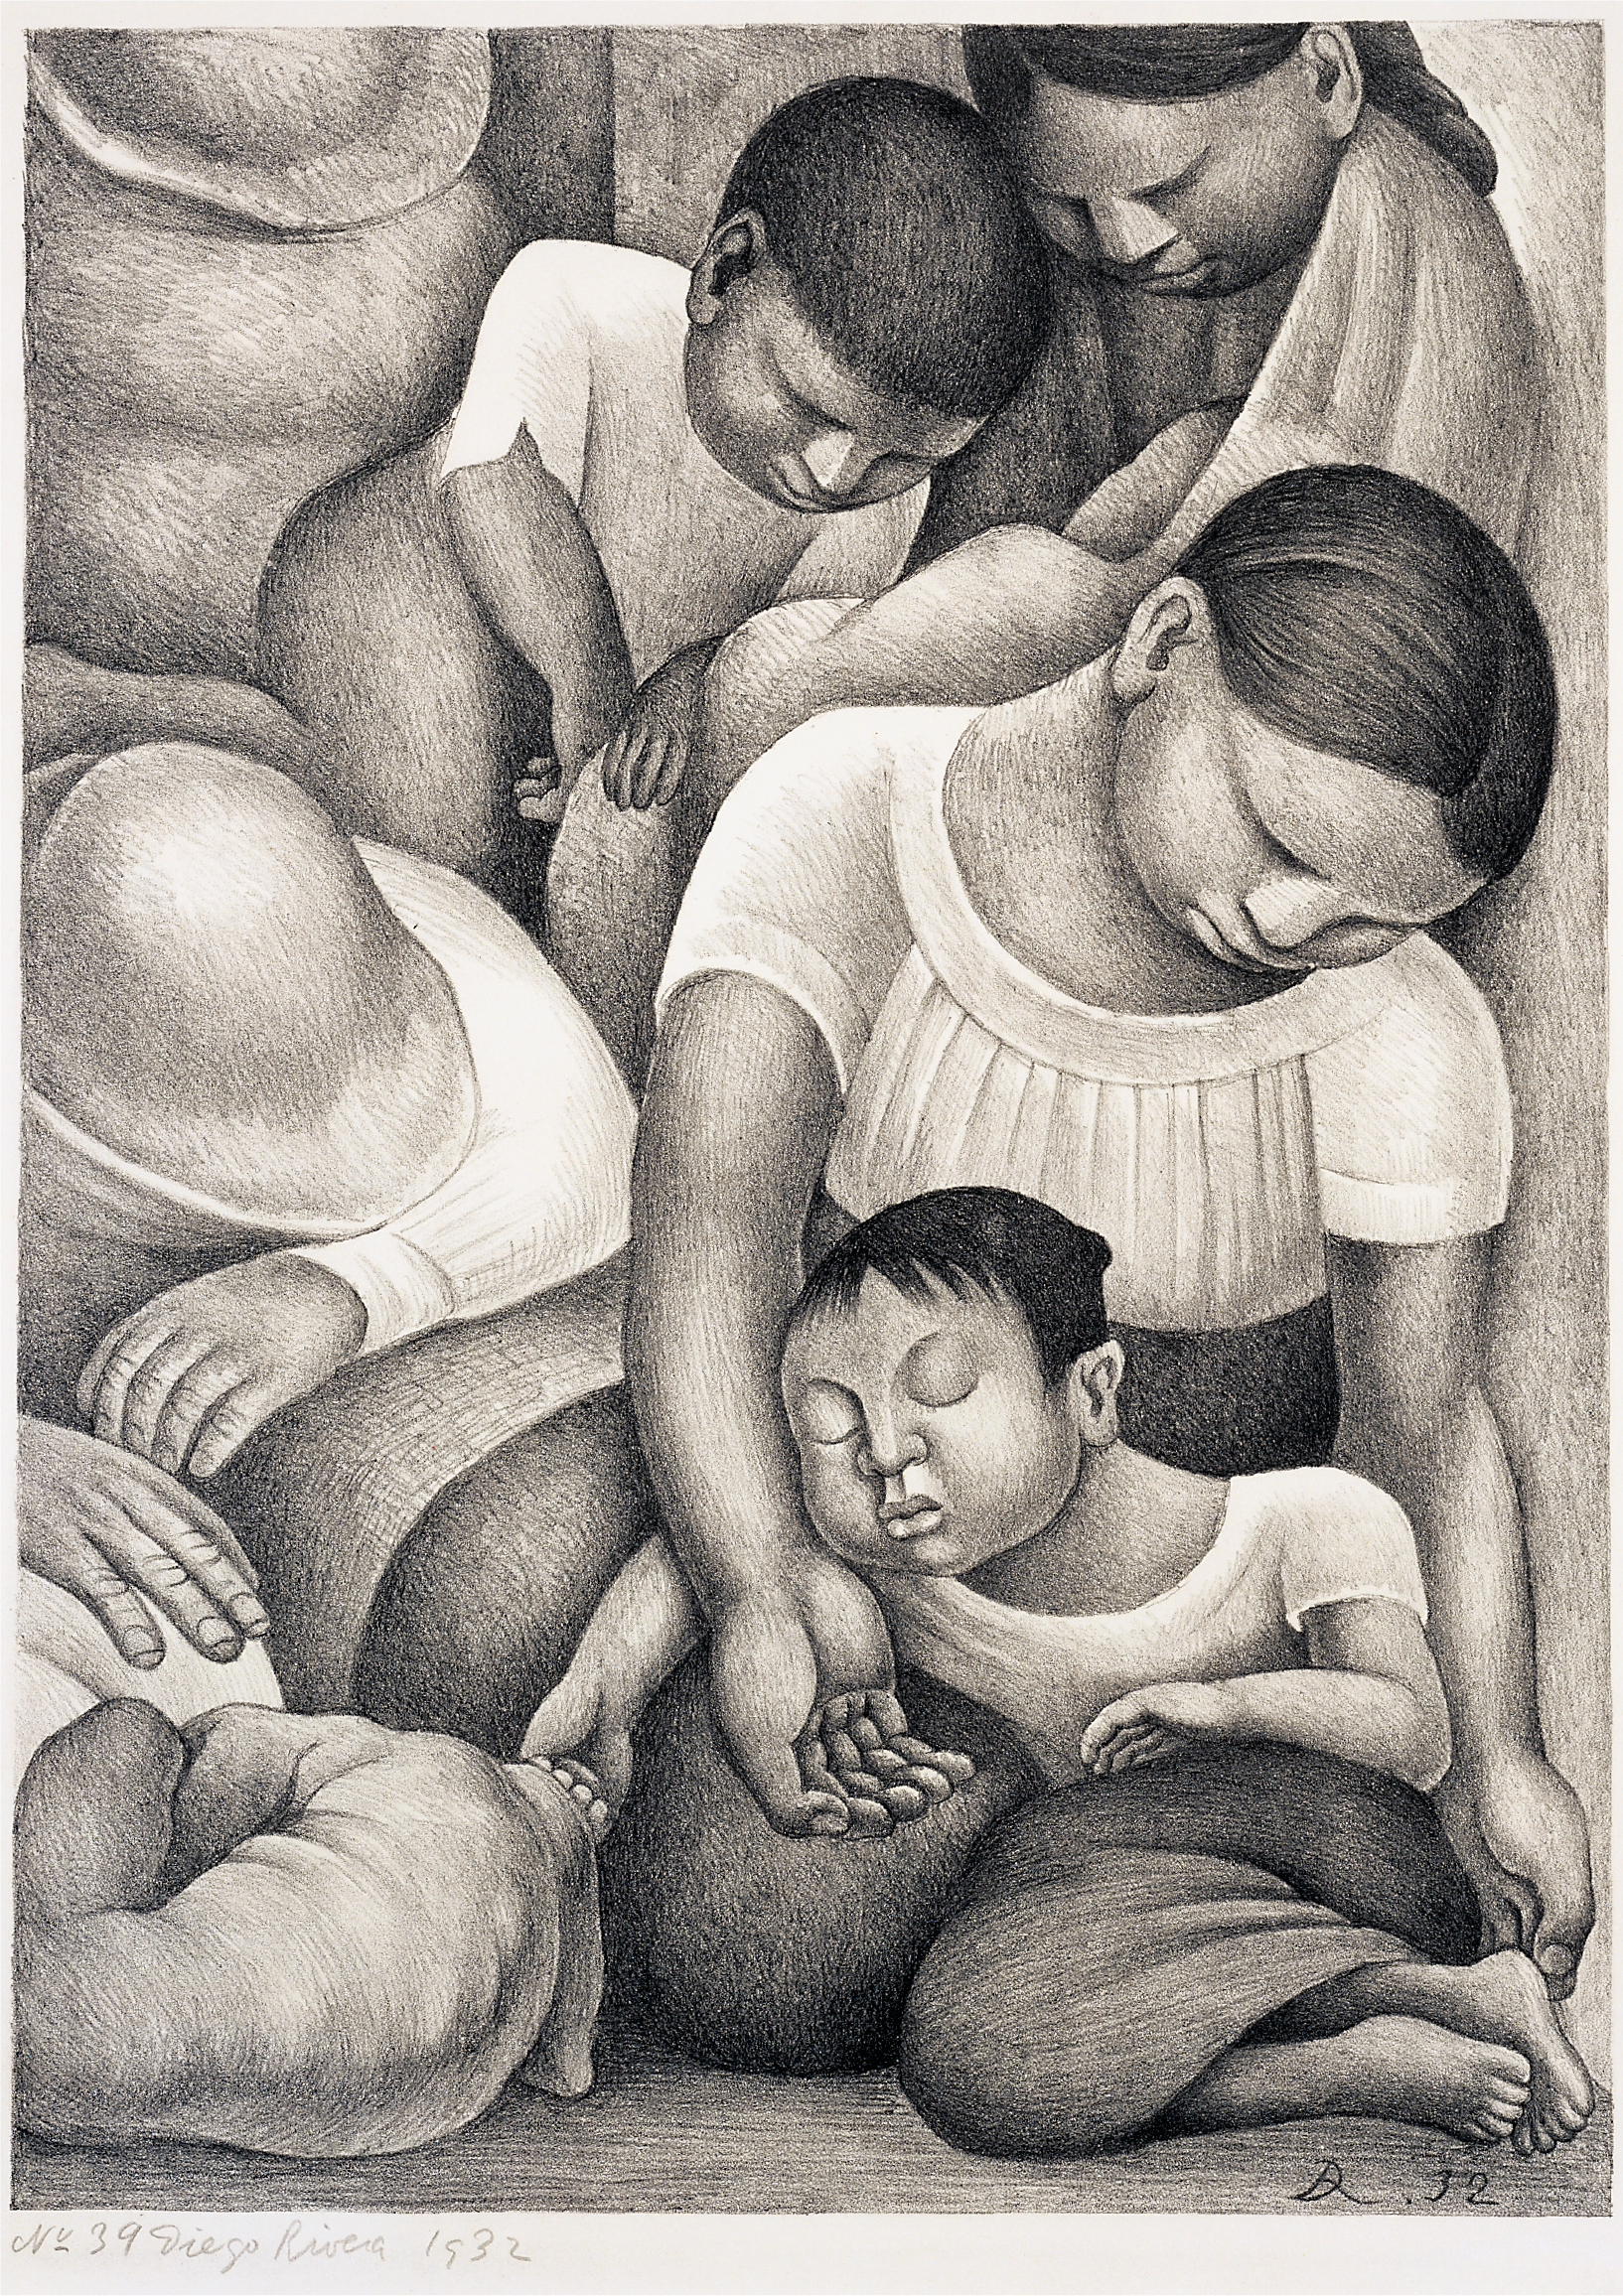 Diego Rivera Mexican, 1886 - 1957 Sleep 1932 Lithograph Museum purchase with funds from the Cullen Foundation, the Friends of the McNay, Charles Butt, Margaret Pace Willson, and Jane and Arthur Stieren 2000.61